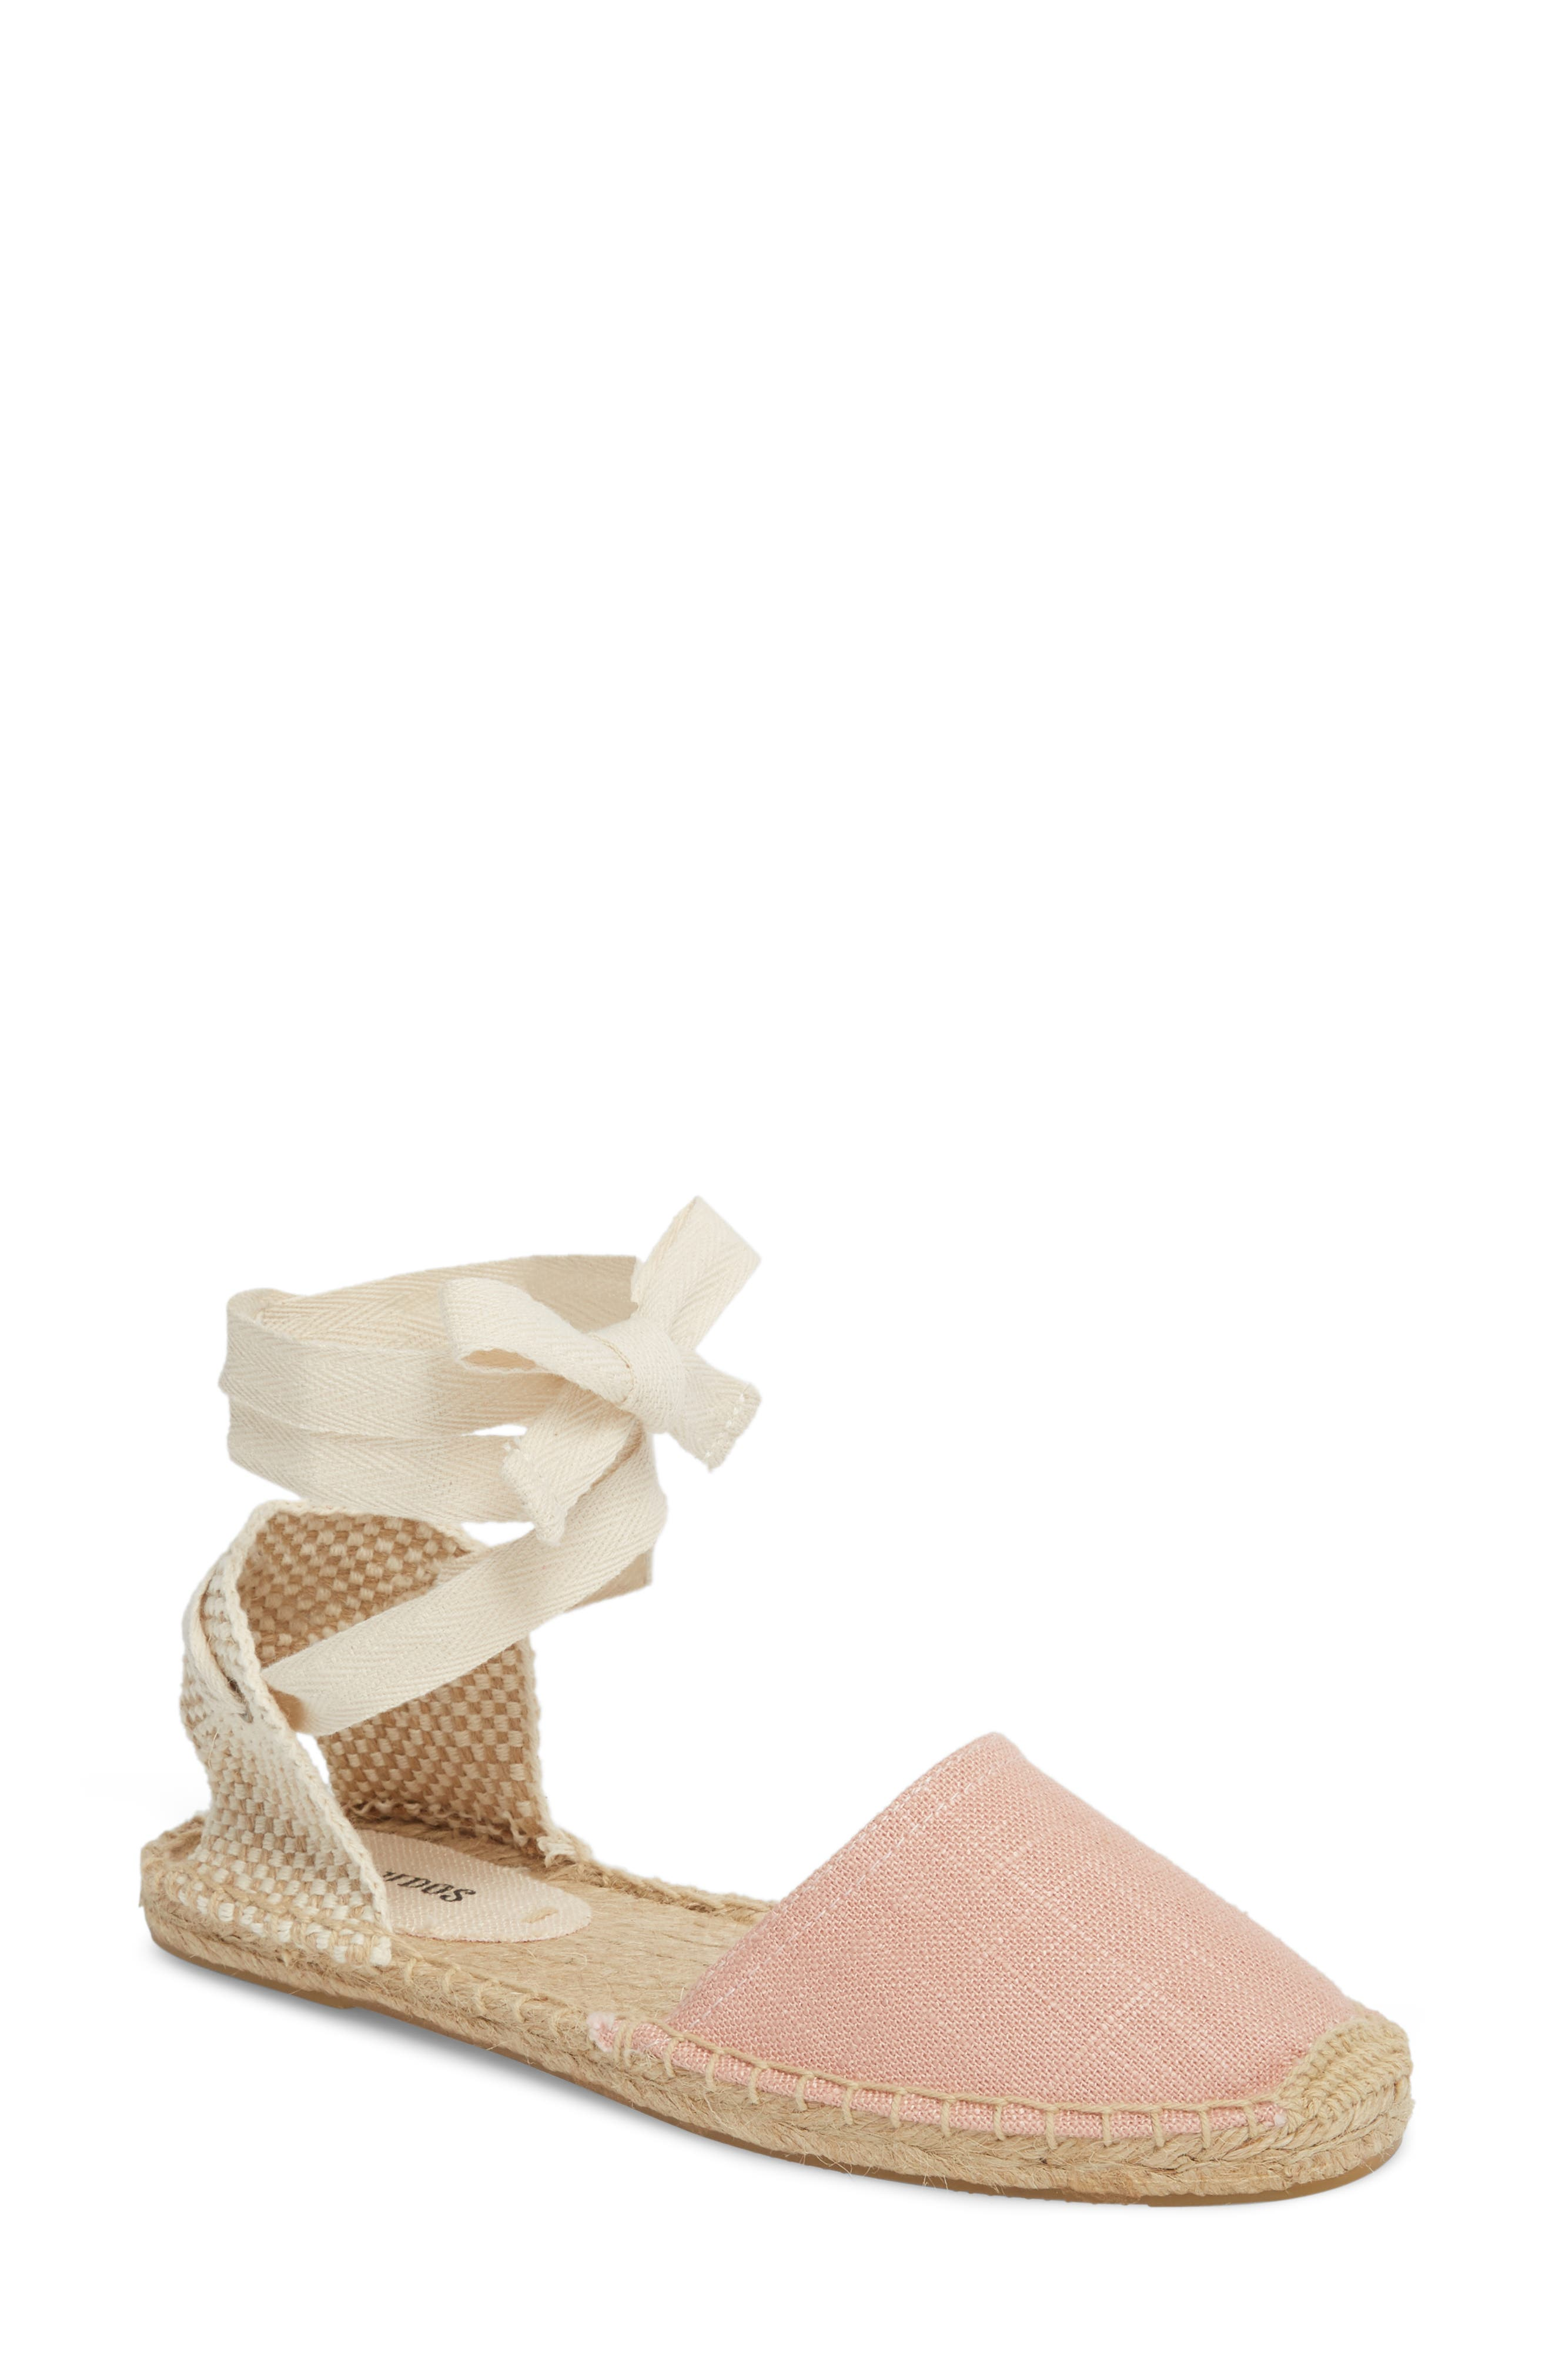 Classic Espadrille Sandal,                         Main,                         color, Dusty Rose Fabric